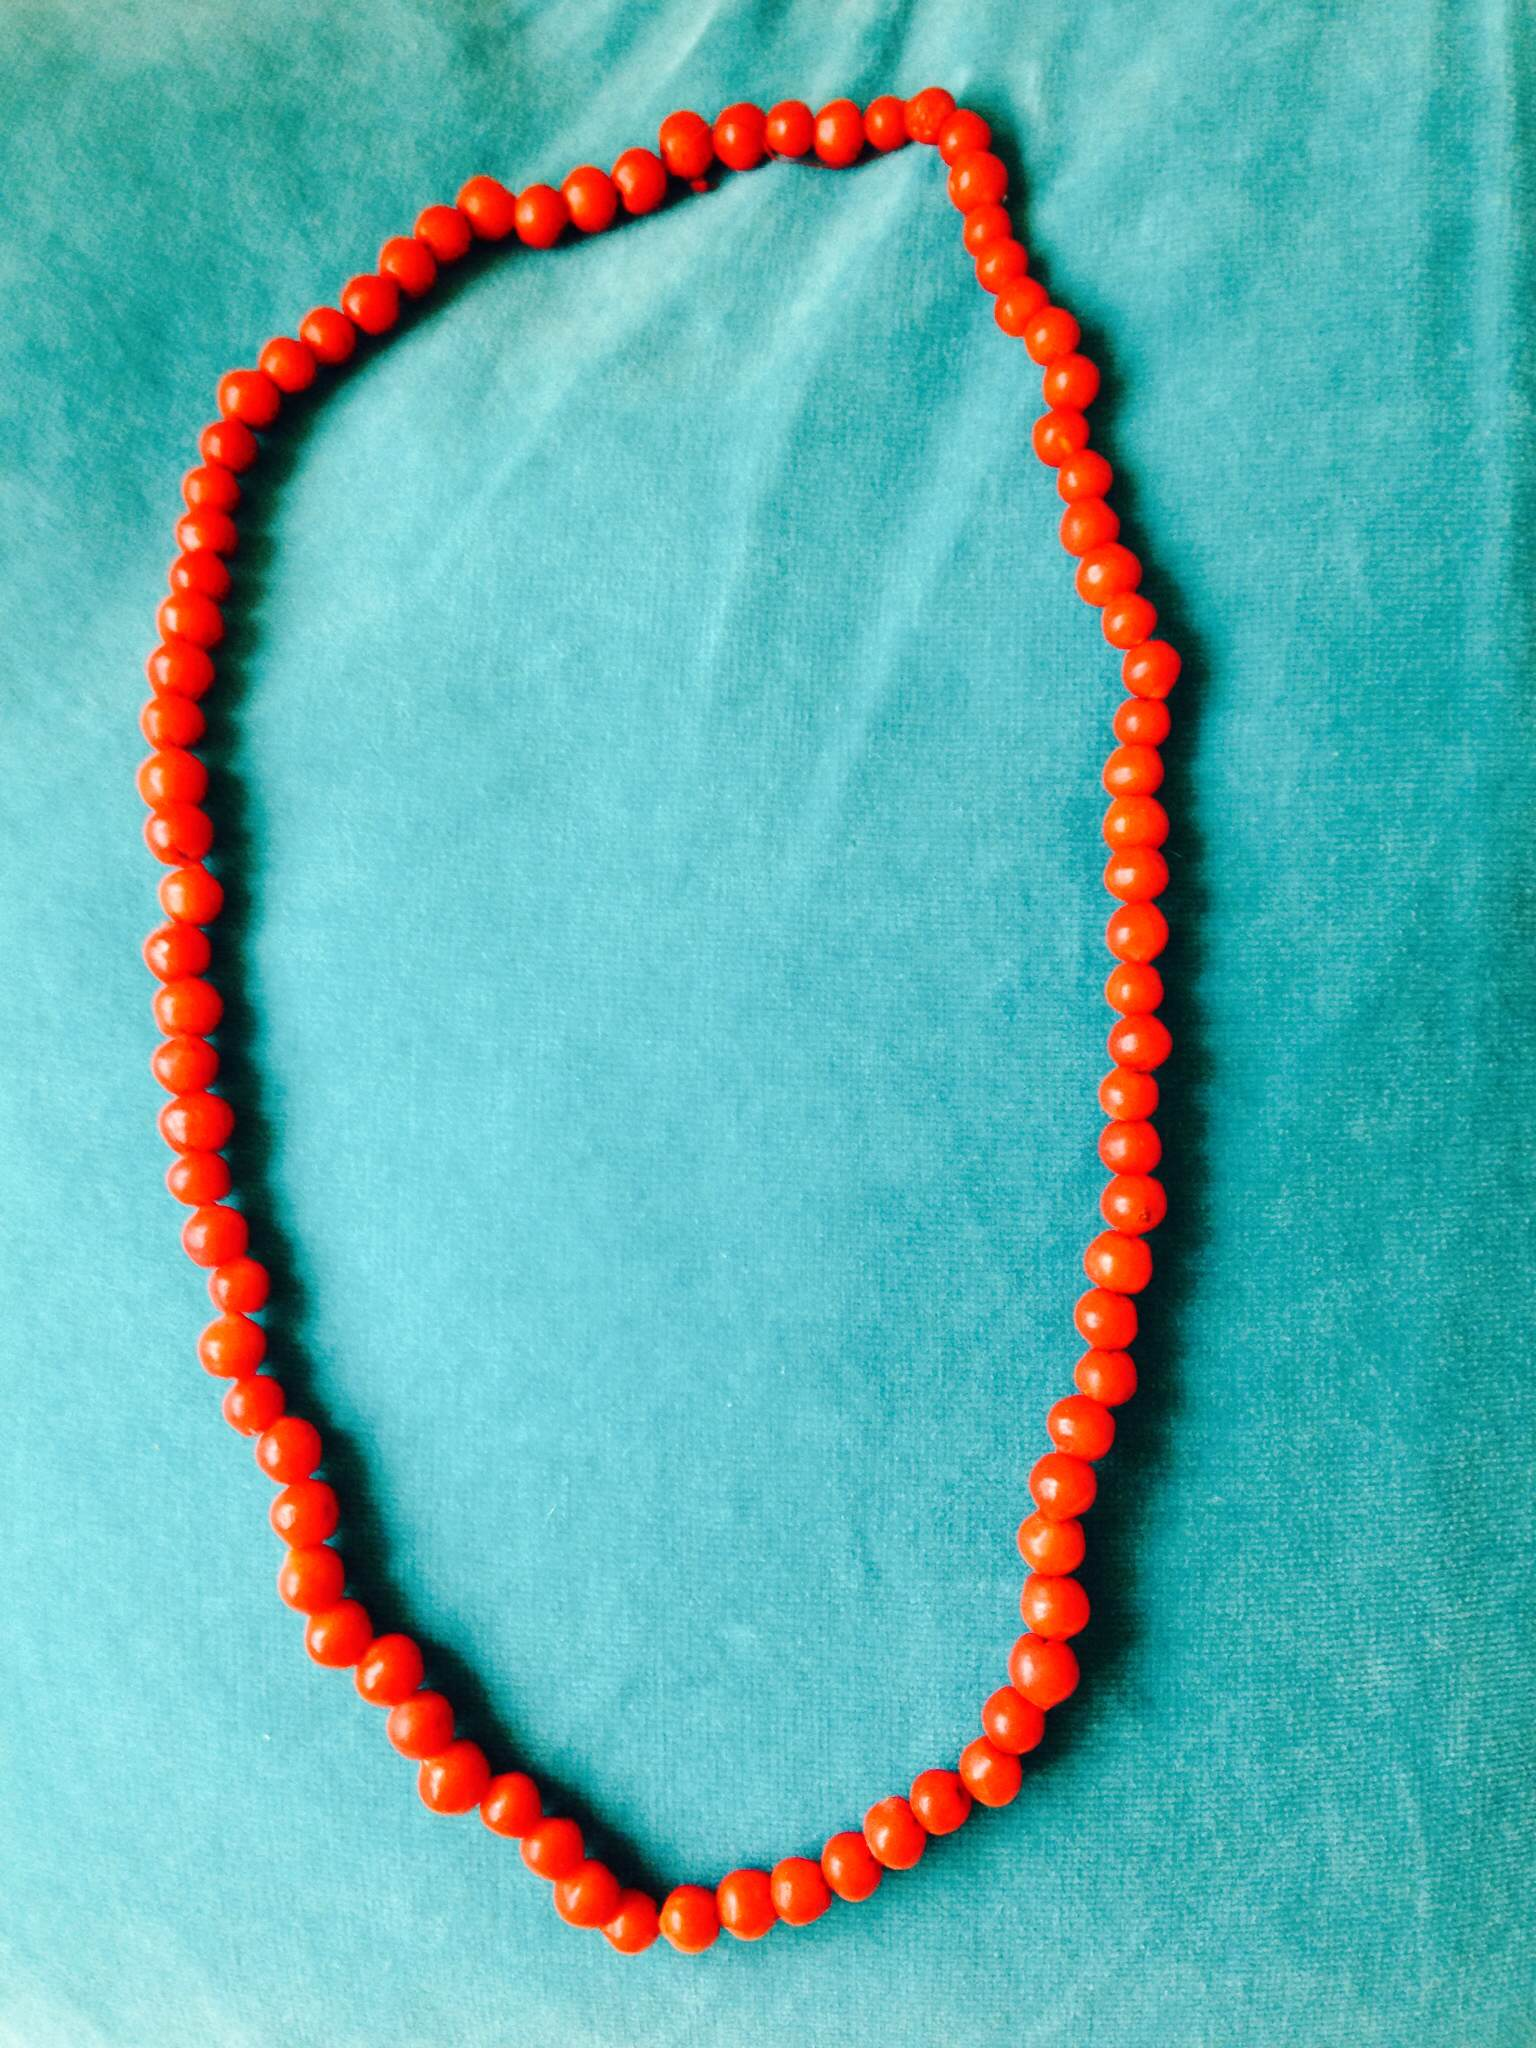 Necklace made from rowanberries